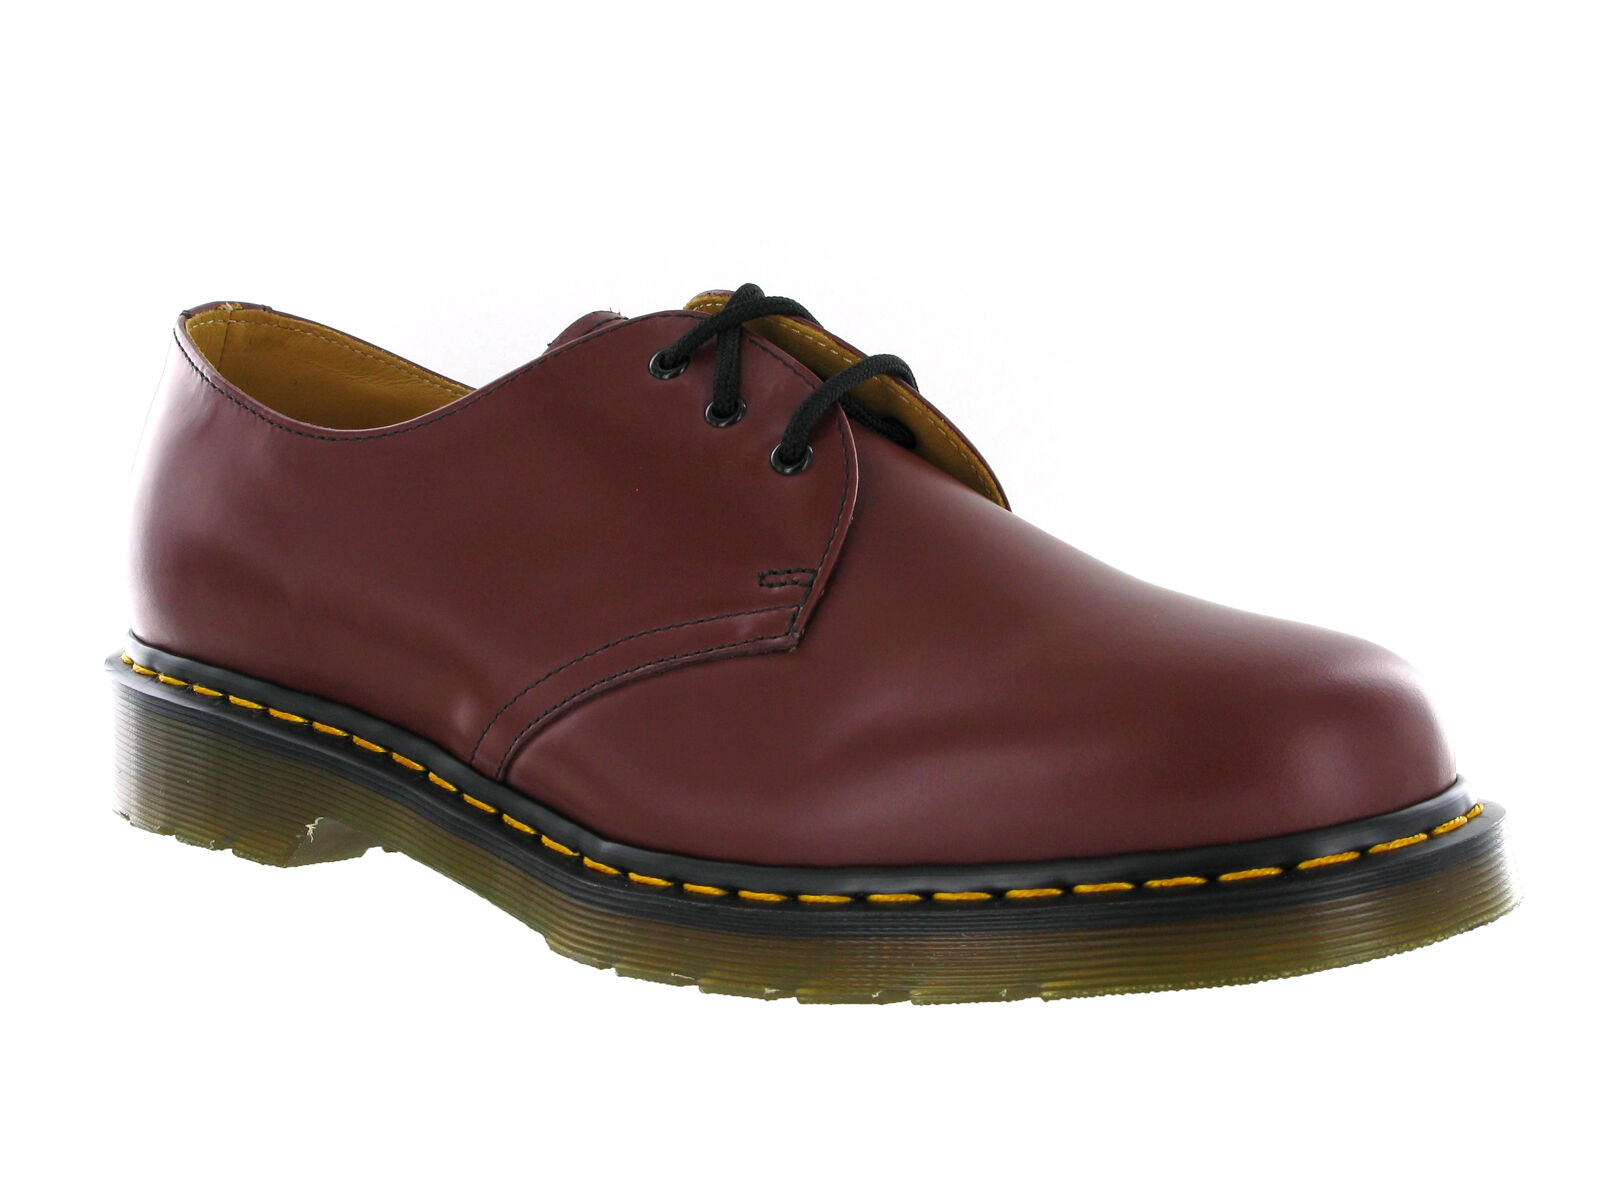 dr martens 1461 3 eye cherry smooth leather formal